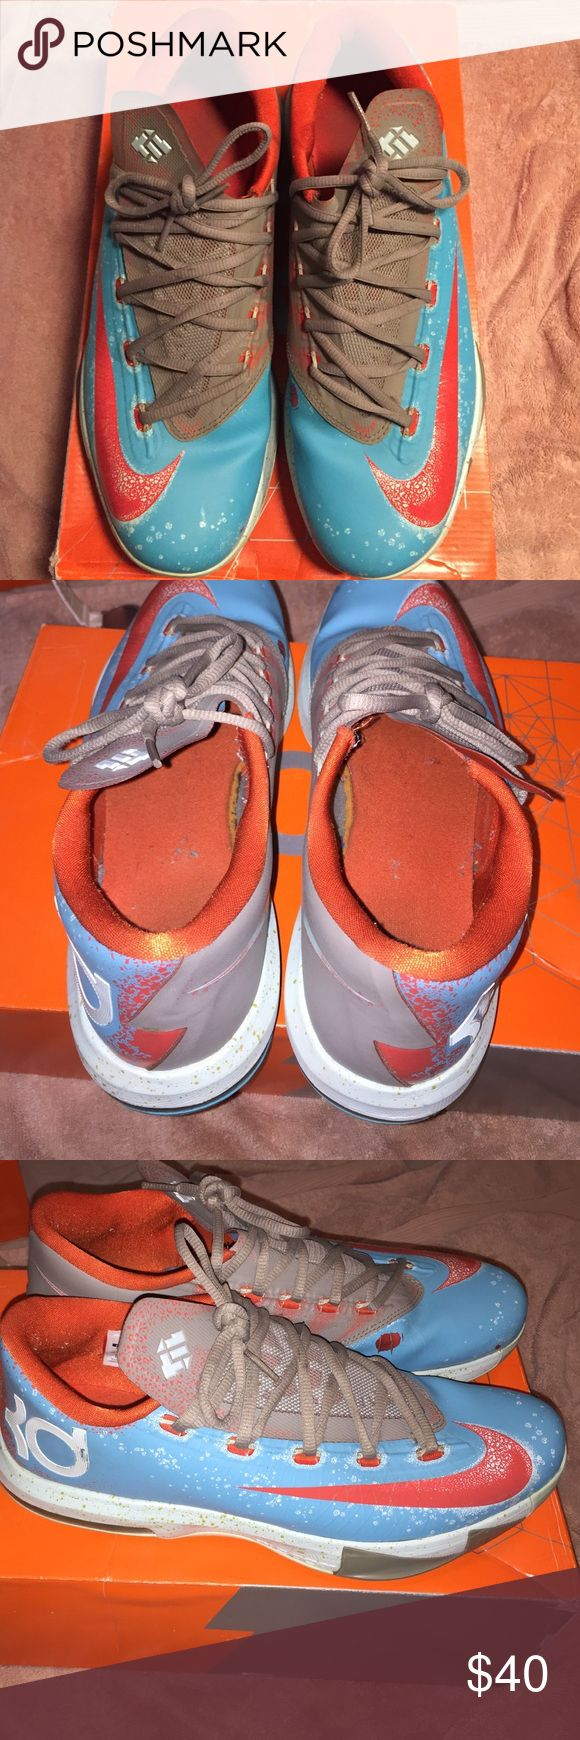 Nike KD VI size 10 Nike KD VI SIZE 10 all flaws are shown. Comes with original box, offers are accepted. Thank you Nike Shoes Sneakers